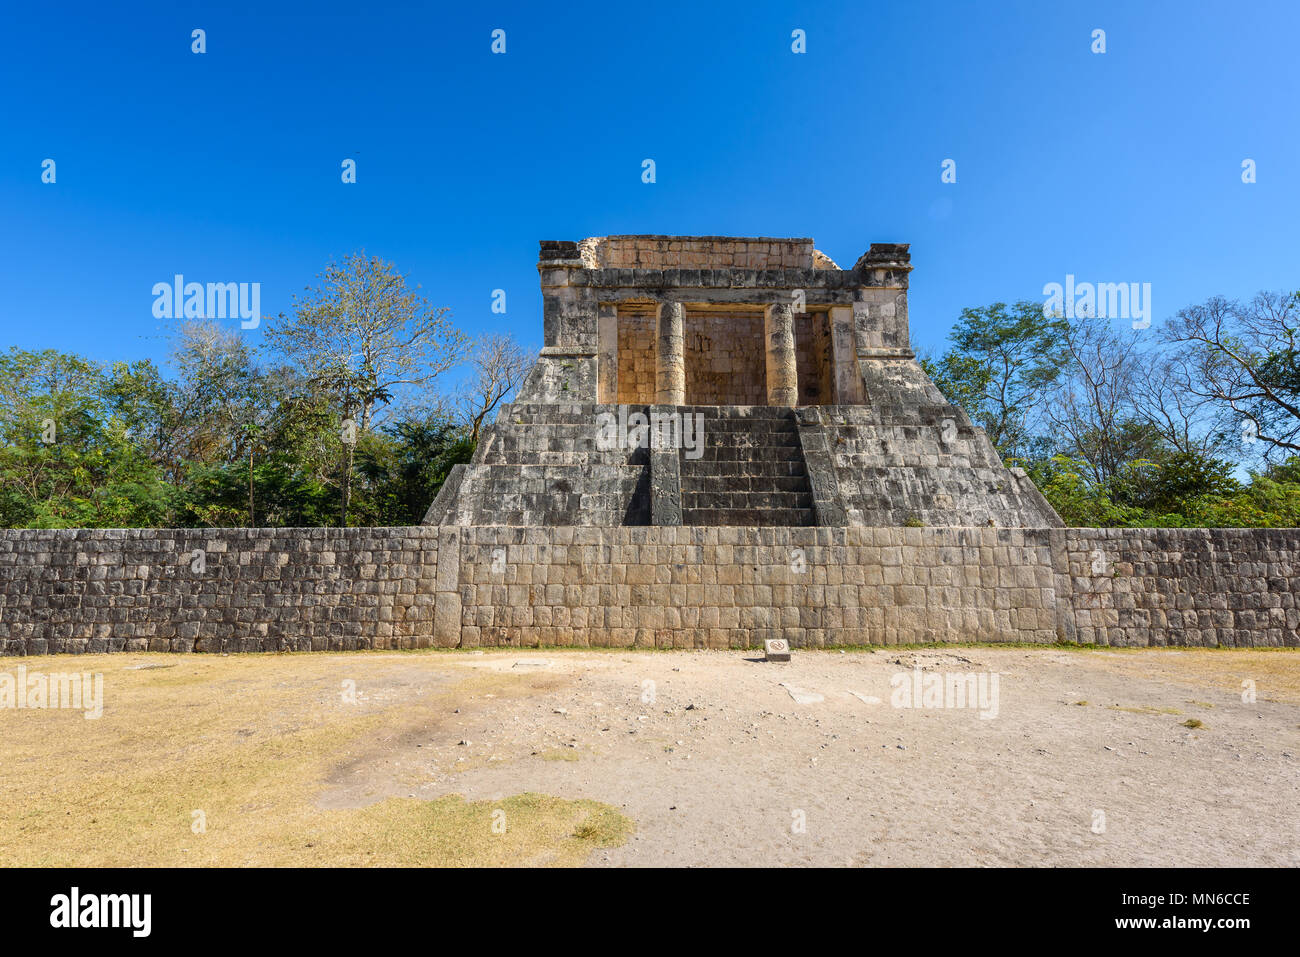 View of the ballcourt at Chichen Itza, old historic ruins in Yucatan, Mexico - Stock Image